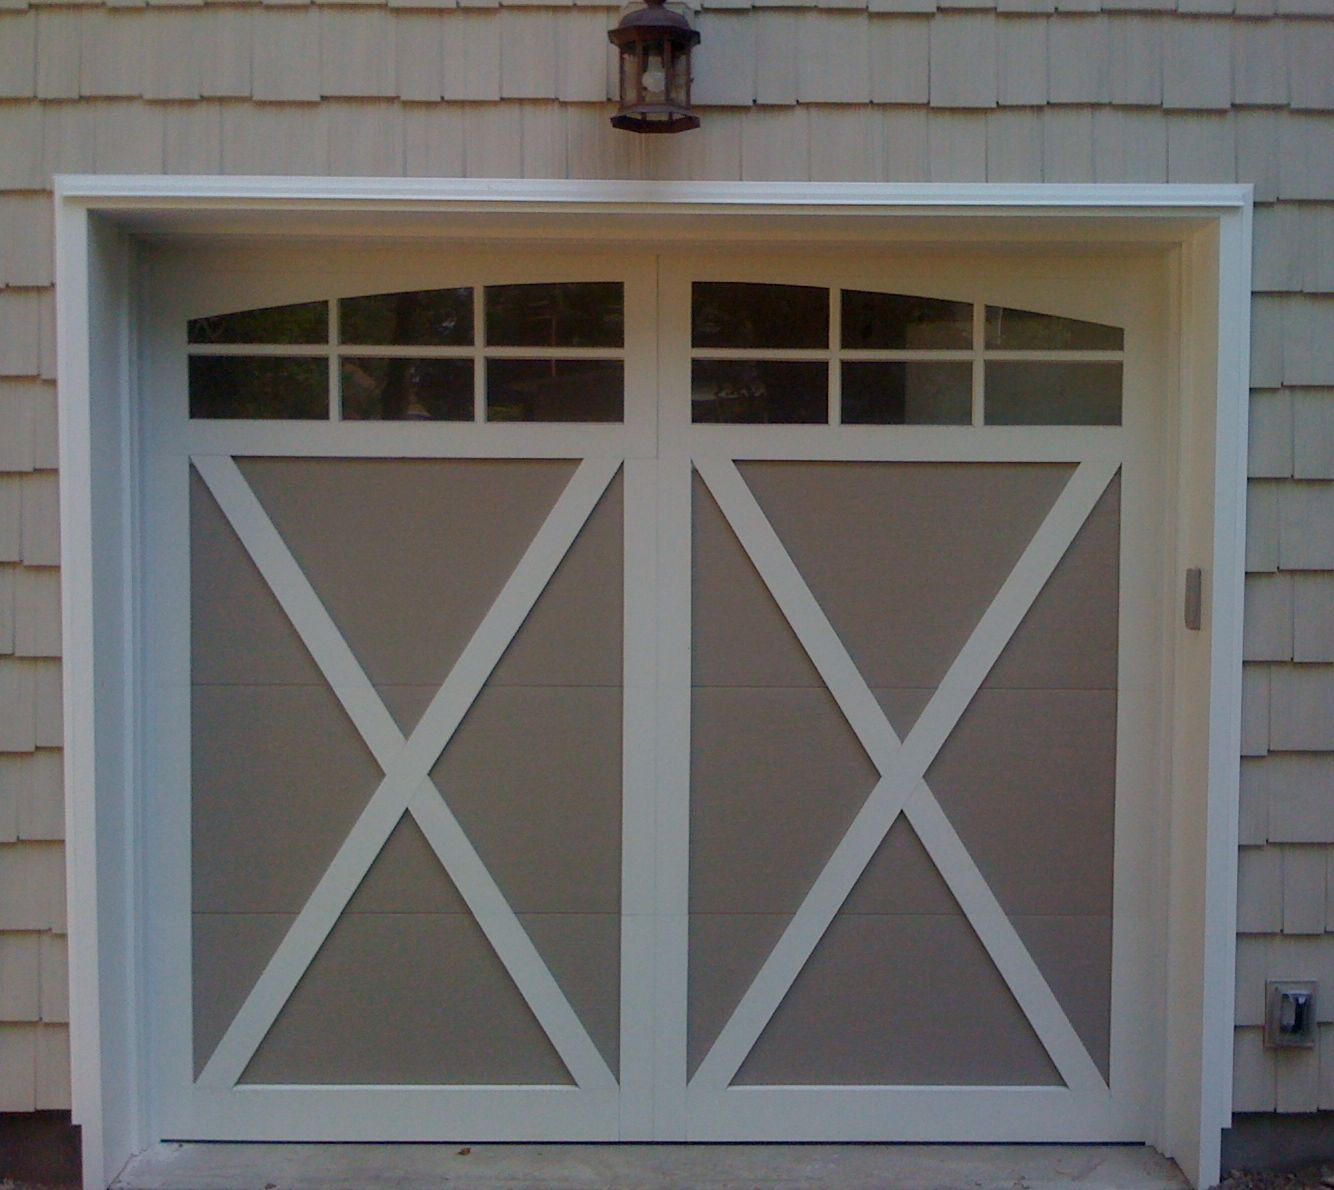 Charmant All American Overhead Garage Doors And Garage Door Openers